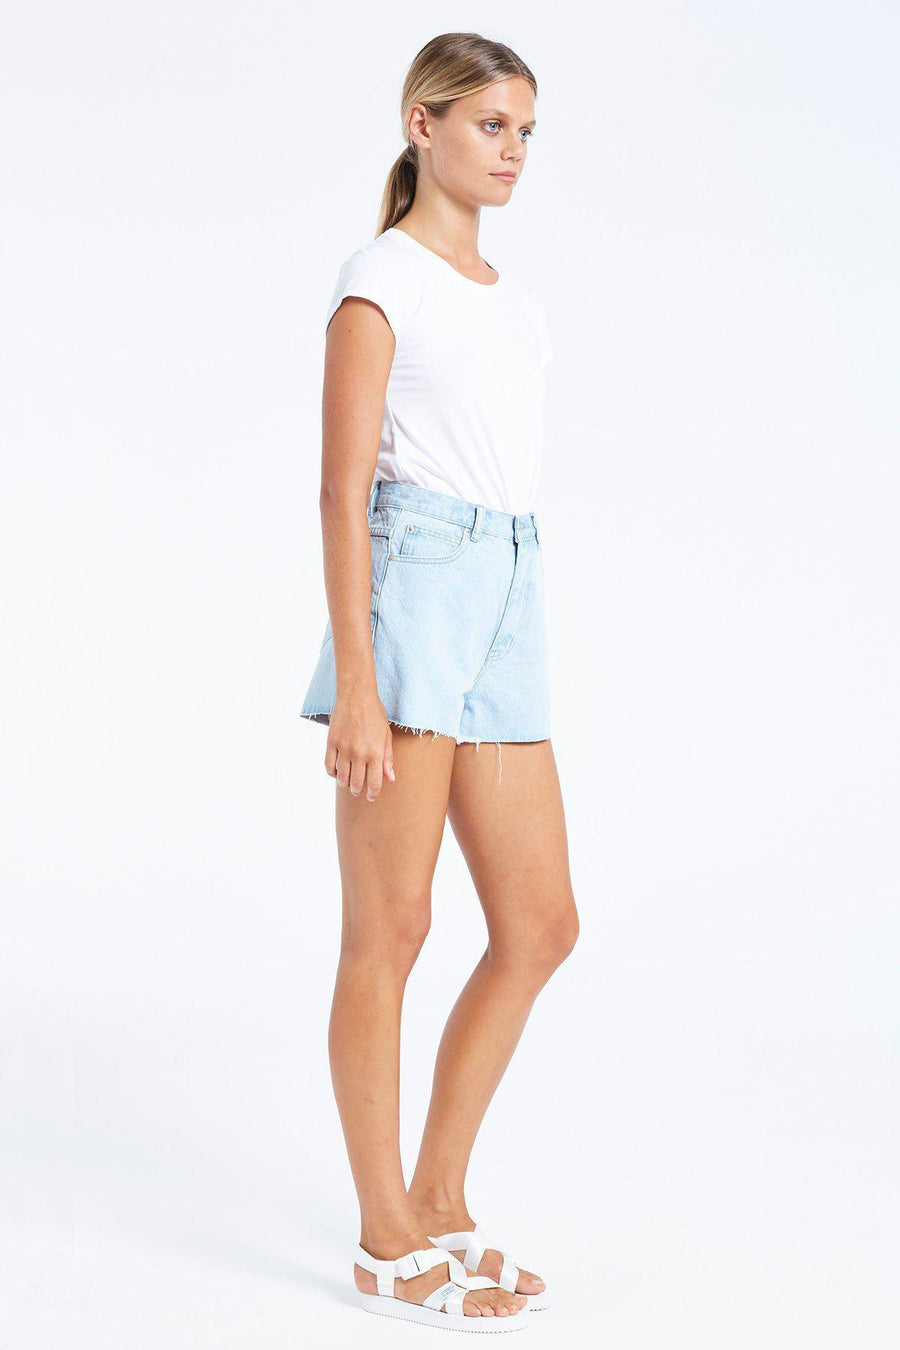 Zulu and Zephyr Forecast Denim Short